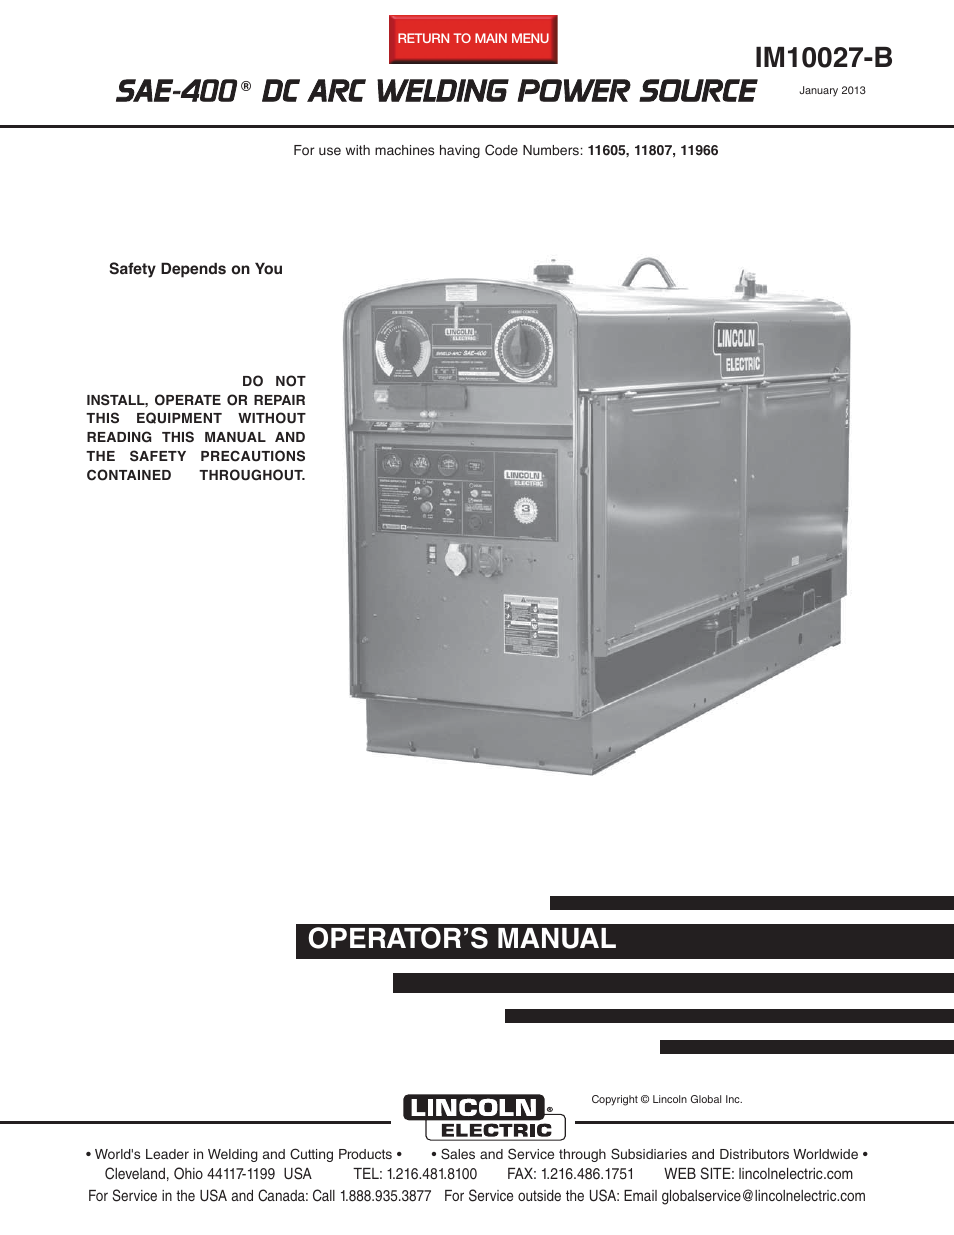 lincoln electric im10027 sae400 user manual 38 pages rh manualsdir com Lincoln SAE 400 Parts Lincoln SAE- 300